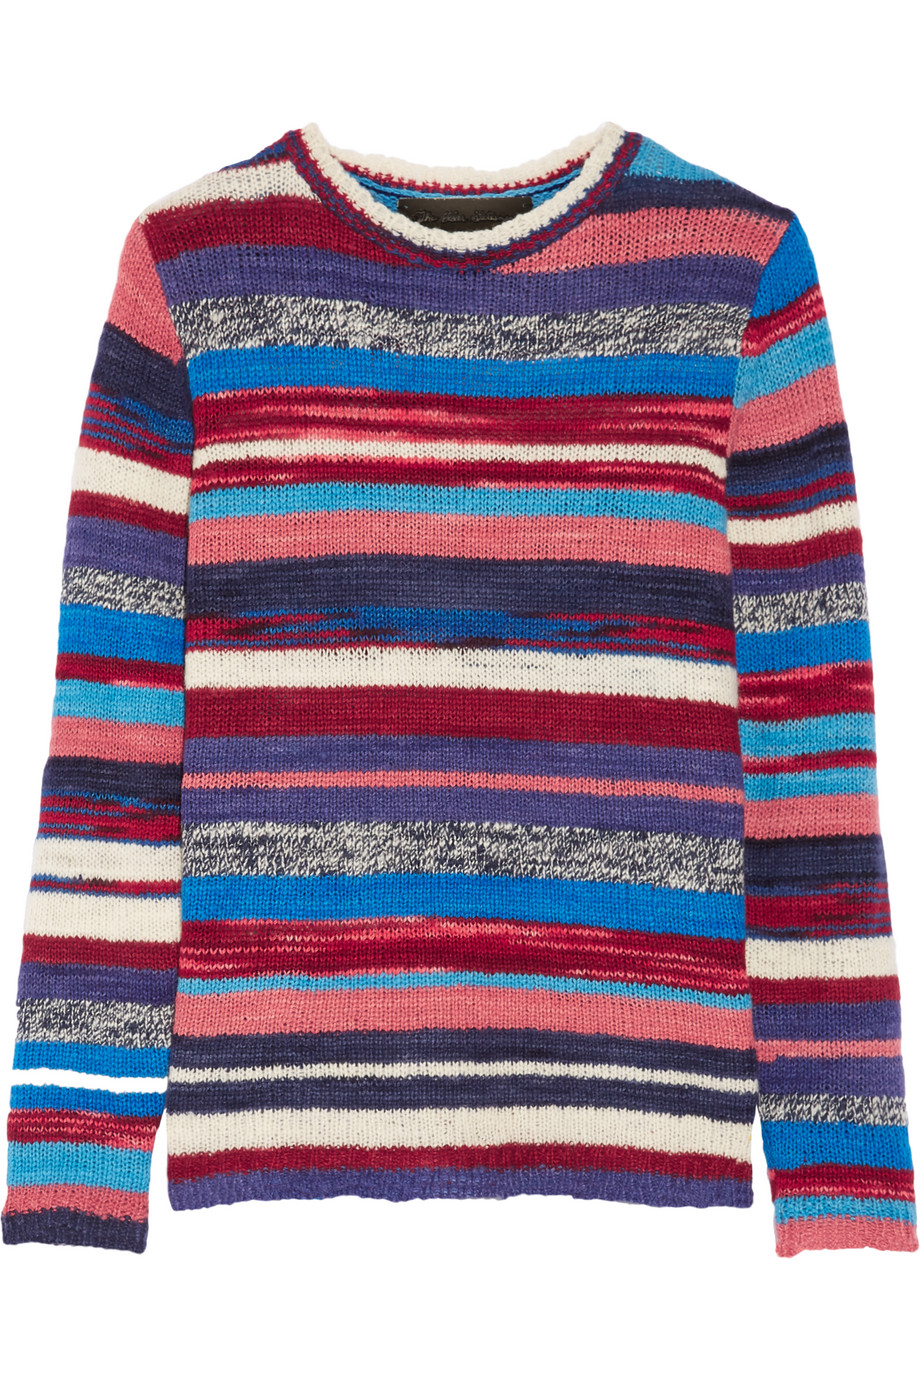 Striped Cashmere Sweater, The Elder Statesman, Red/Blue, Women's, Size: L